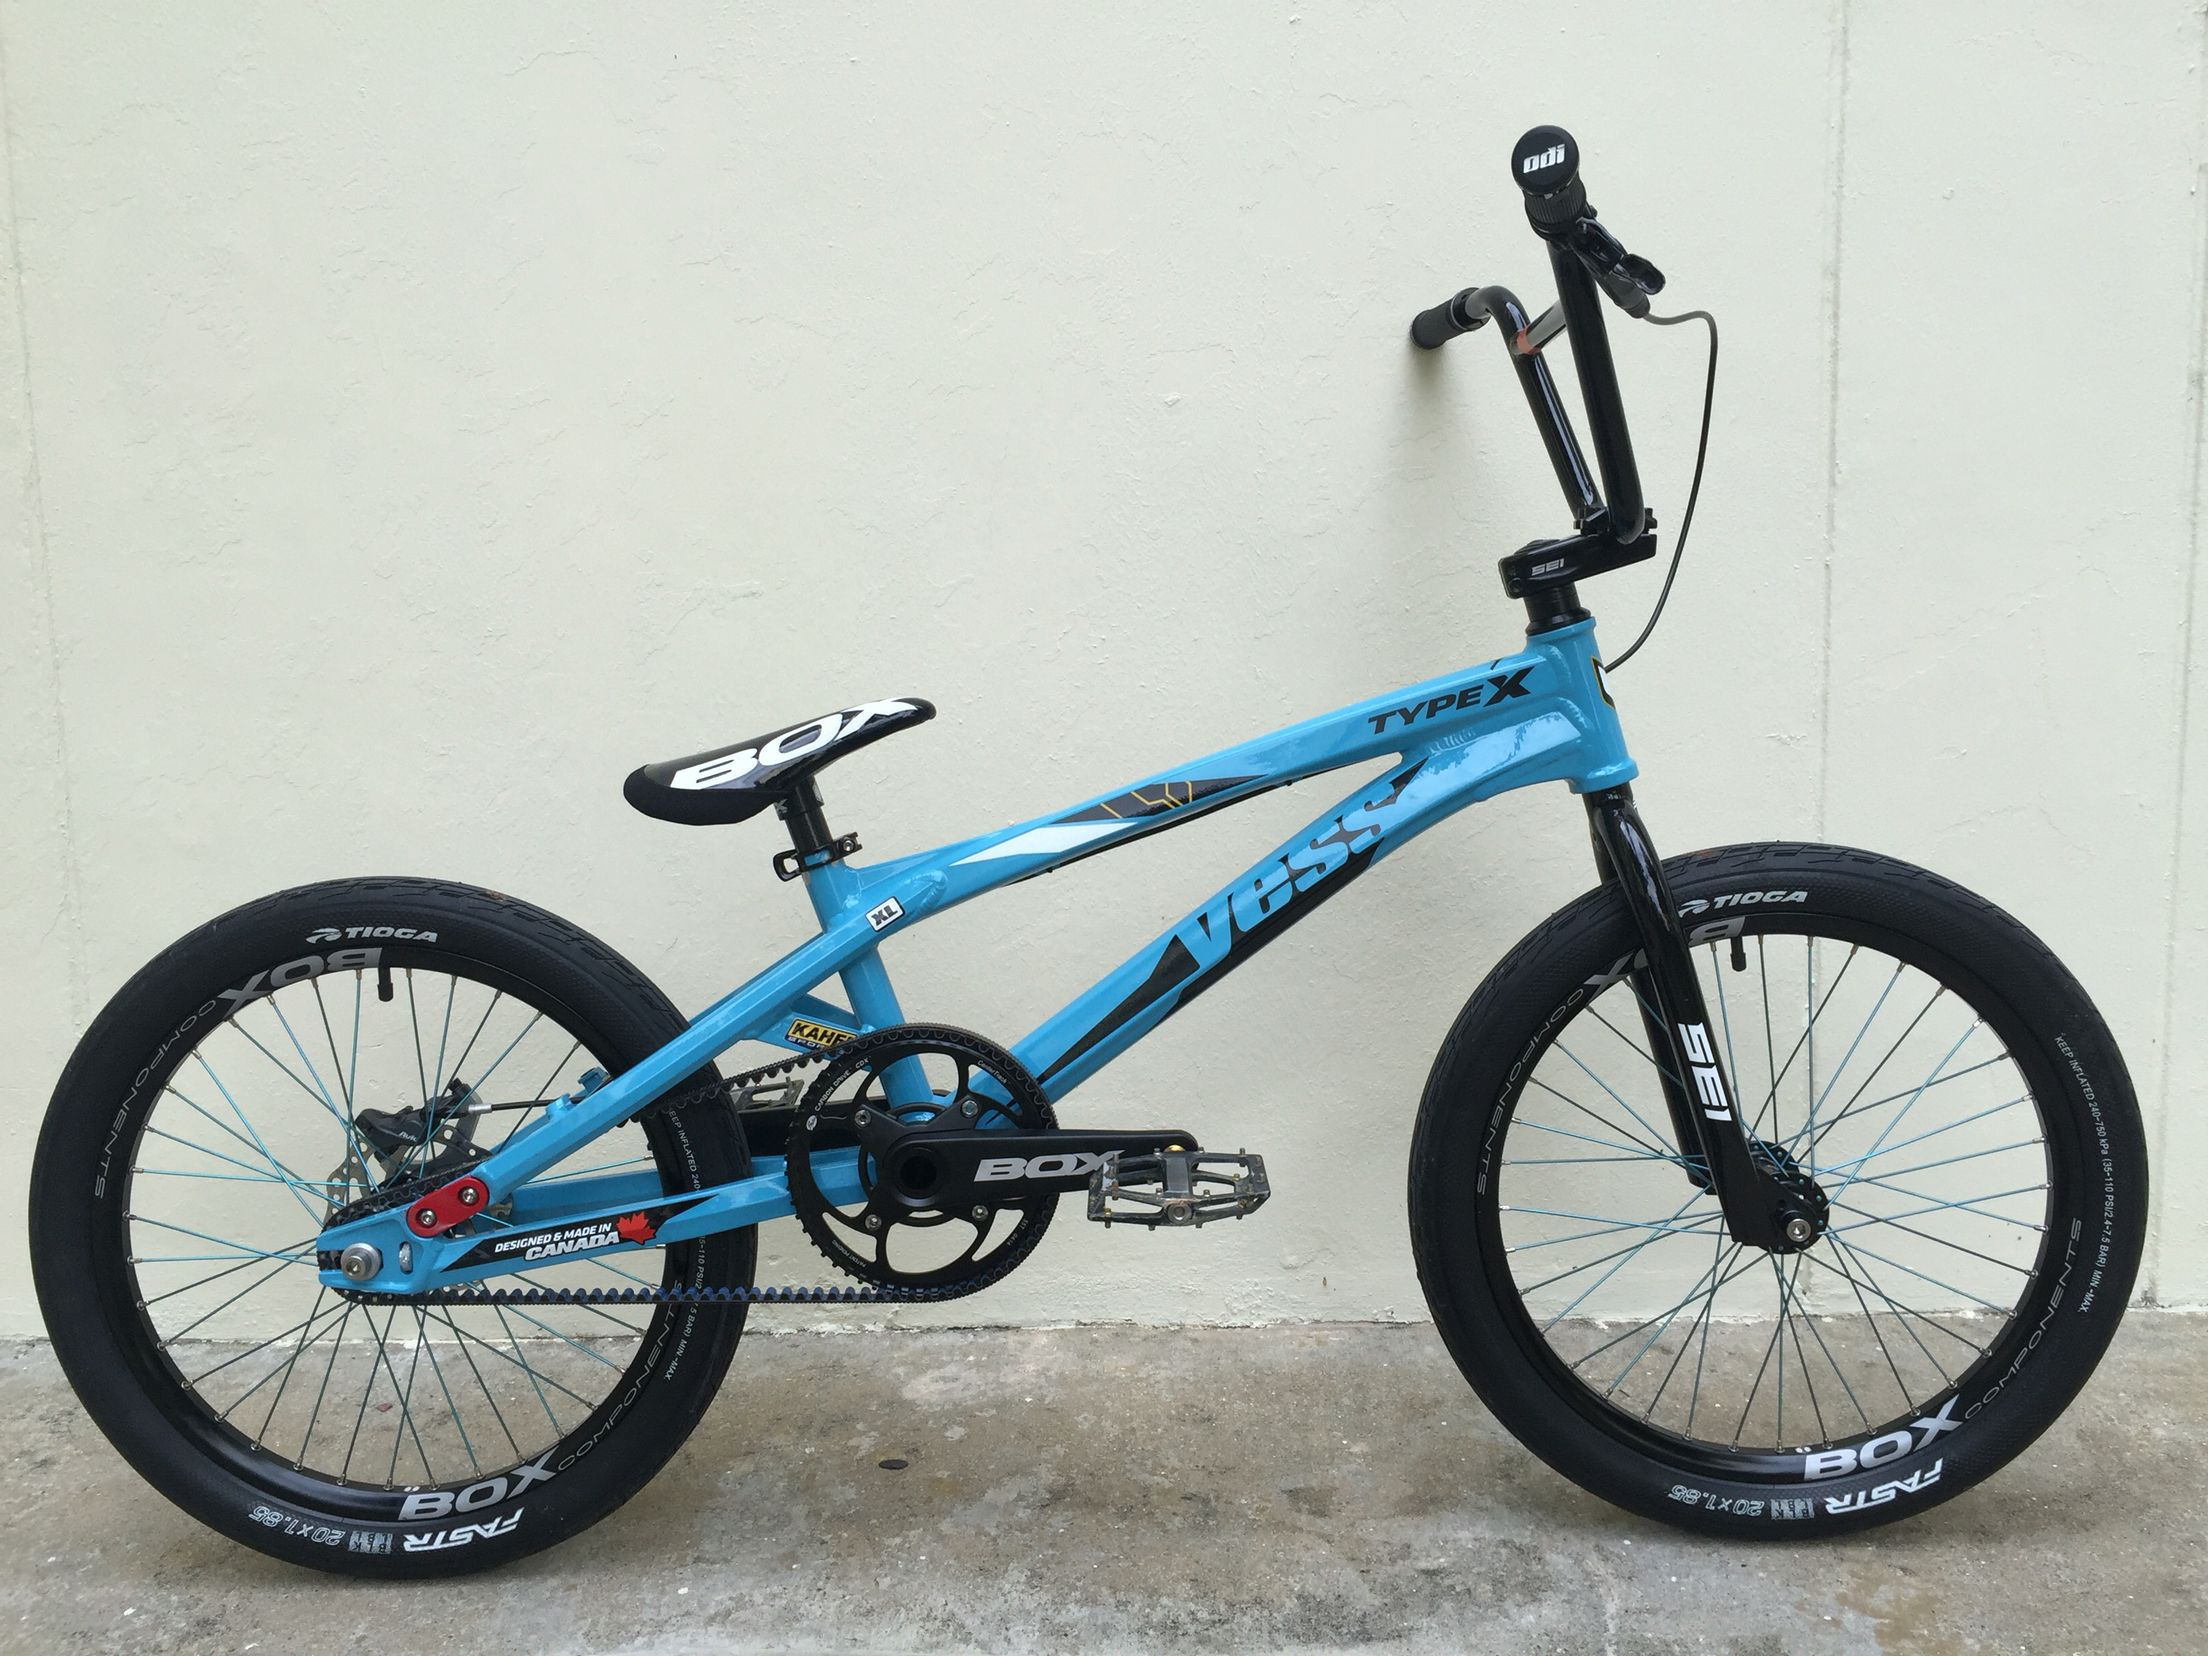 Lovely Version 2: YESS BMX Type X Gates Carbon Drive Production, Onyx Hubs, Box  Components, Rear Disc. Mad Ride.